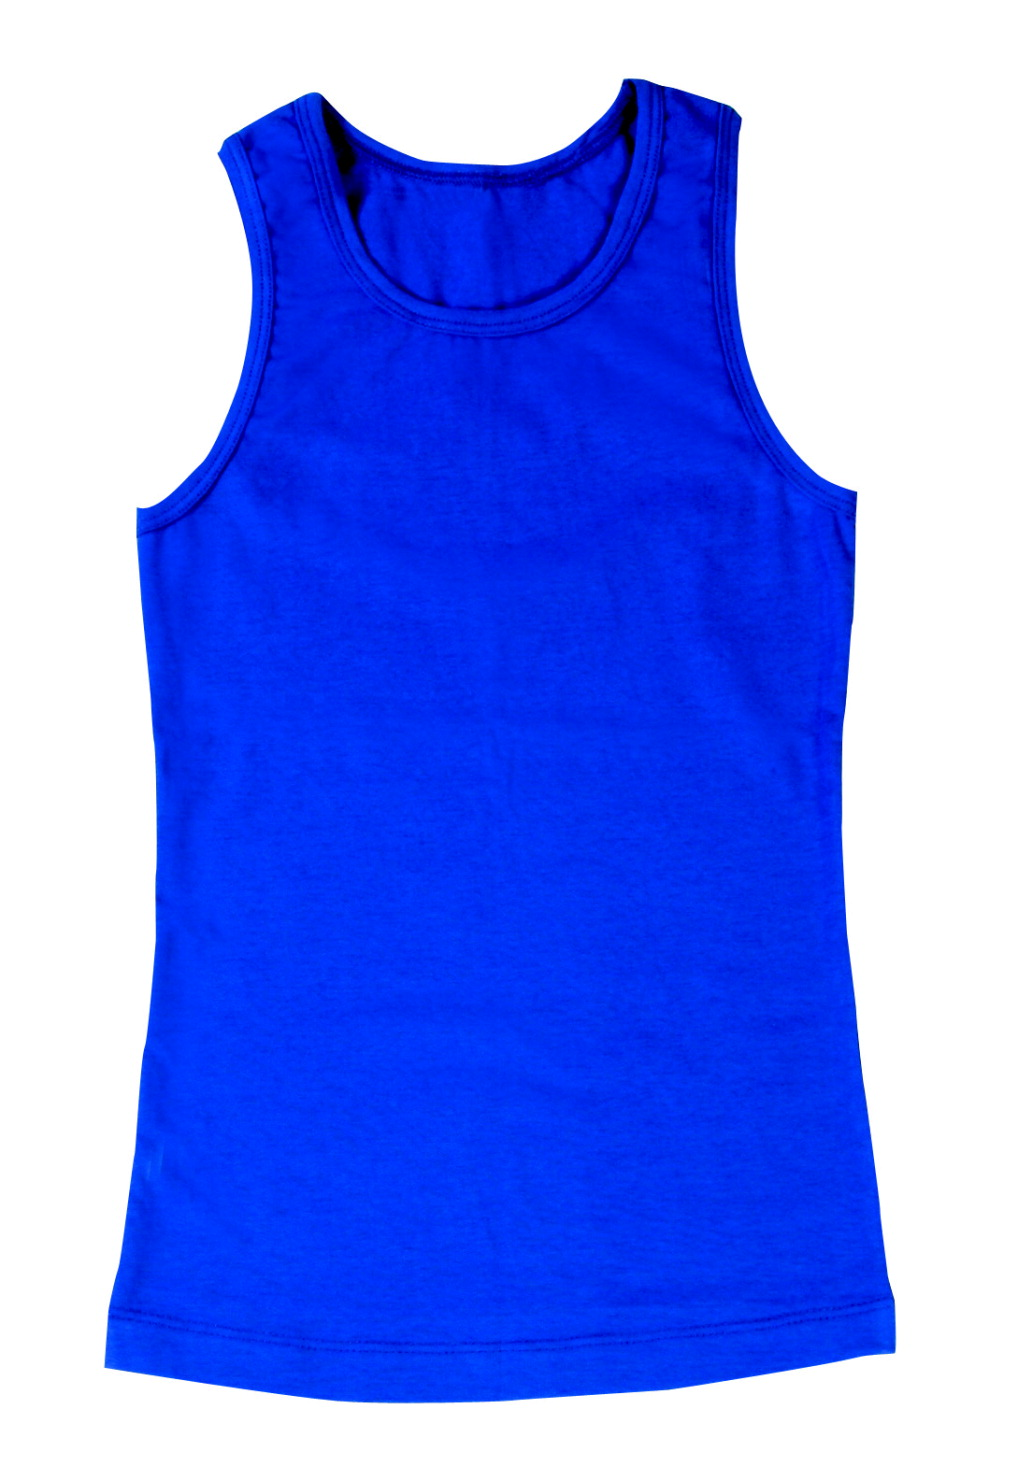 Find Motorcycle Tank Tops at J&P Cycles, your source for aftermarket motorcycle parts and accessories. ≡ World's Largest Aftermarket Motorcycle Parts and Accessories Superstore! Lethal Angel Women's Ocean Skull White/Blue Tank Top $